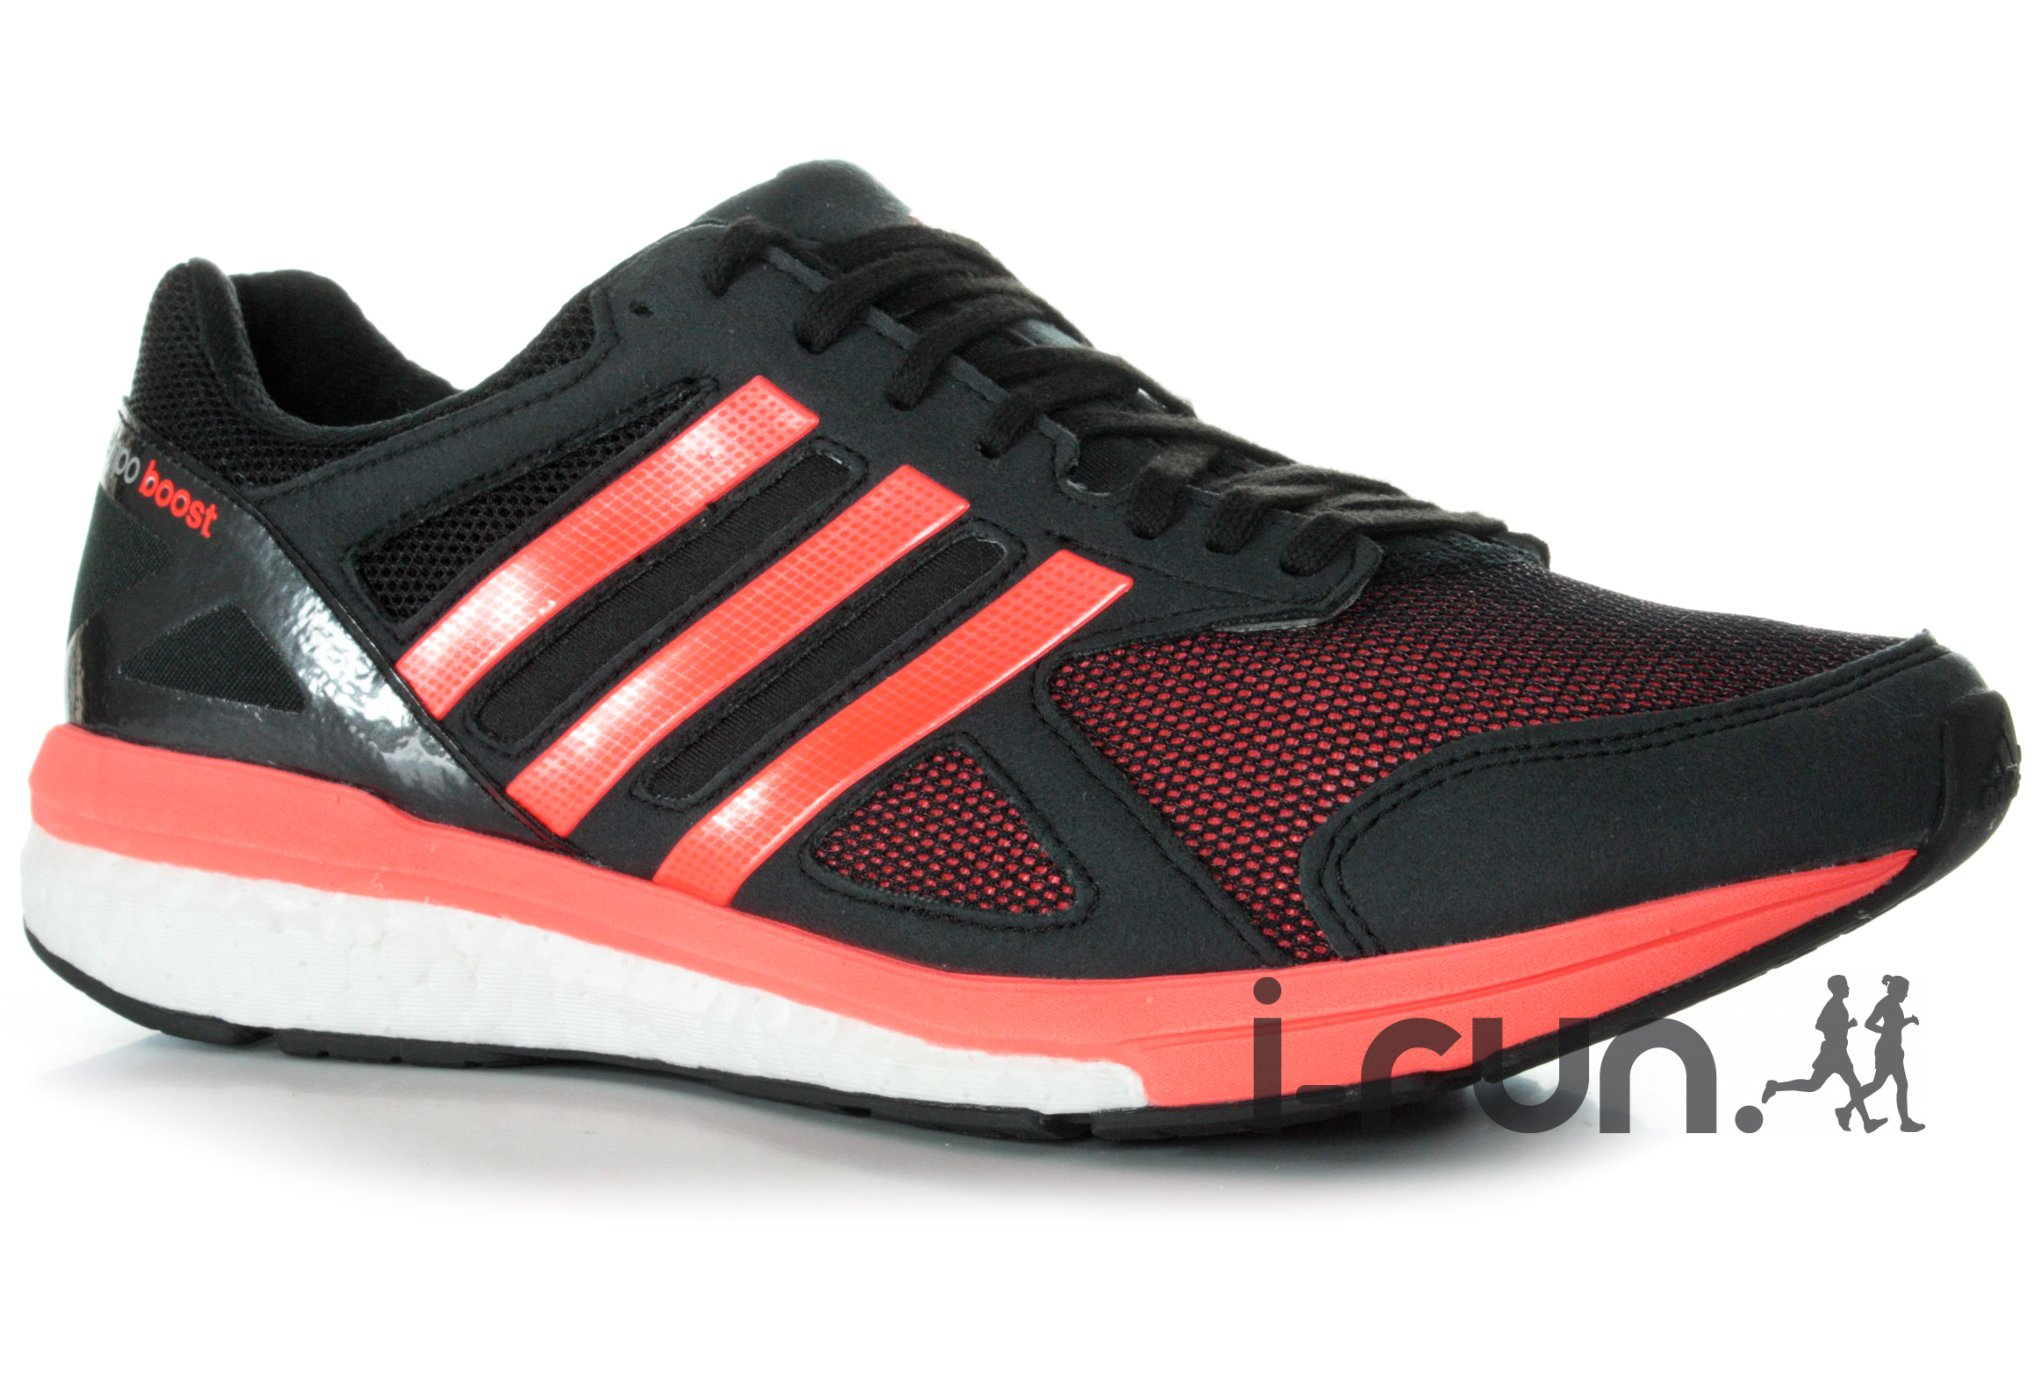 separation shoes 753fe 4f48a Tempo Adizero Adidas Test Boost Des qTanwZ